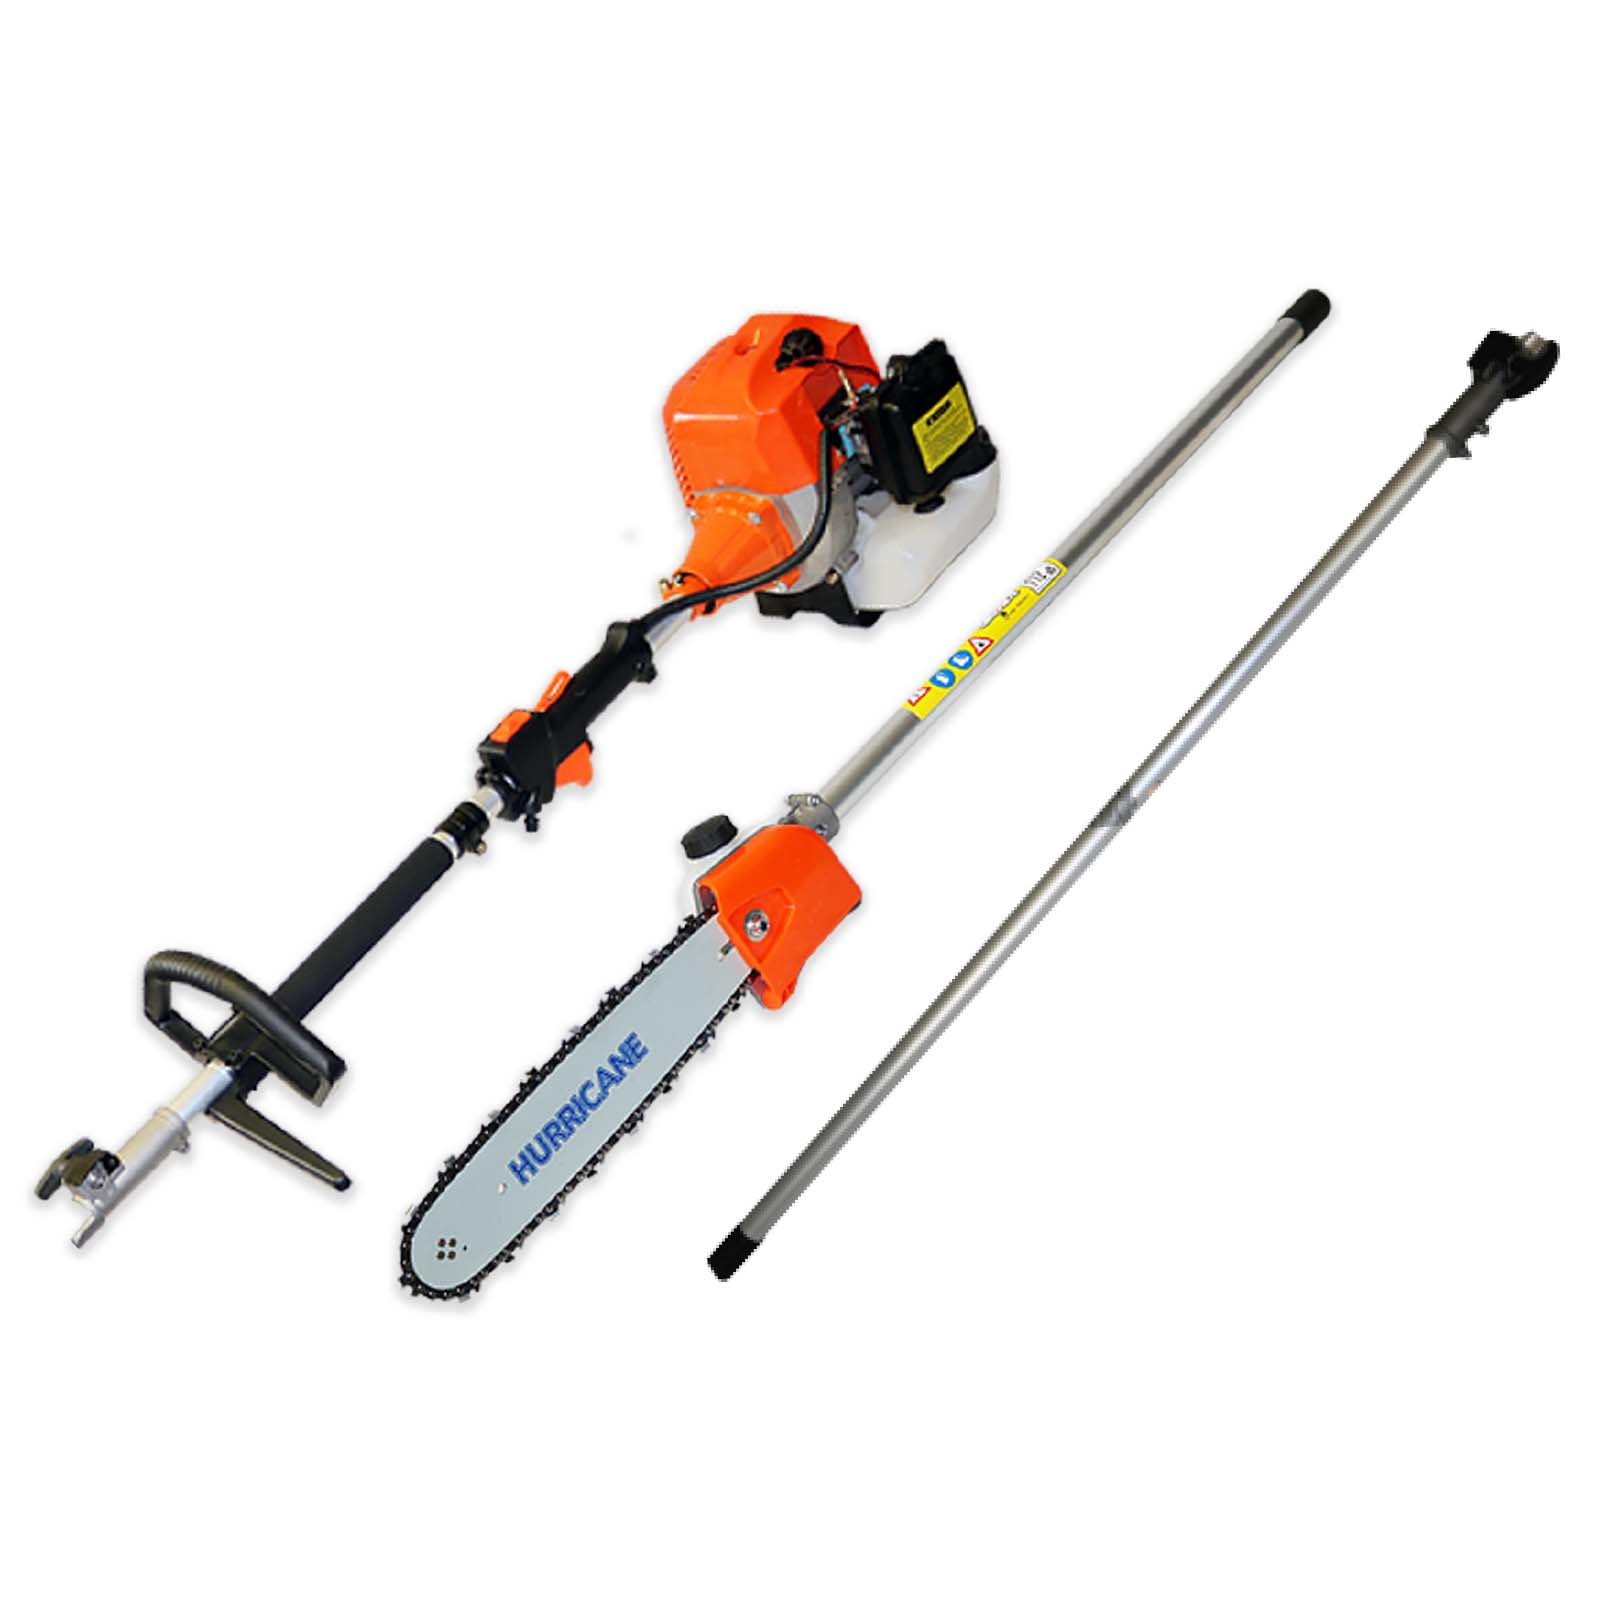 62cc Pole Saw Chainsaw attachment and Multi Tool power head combo